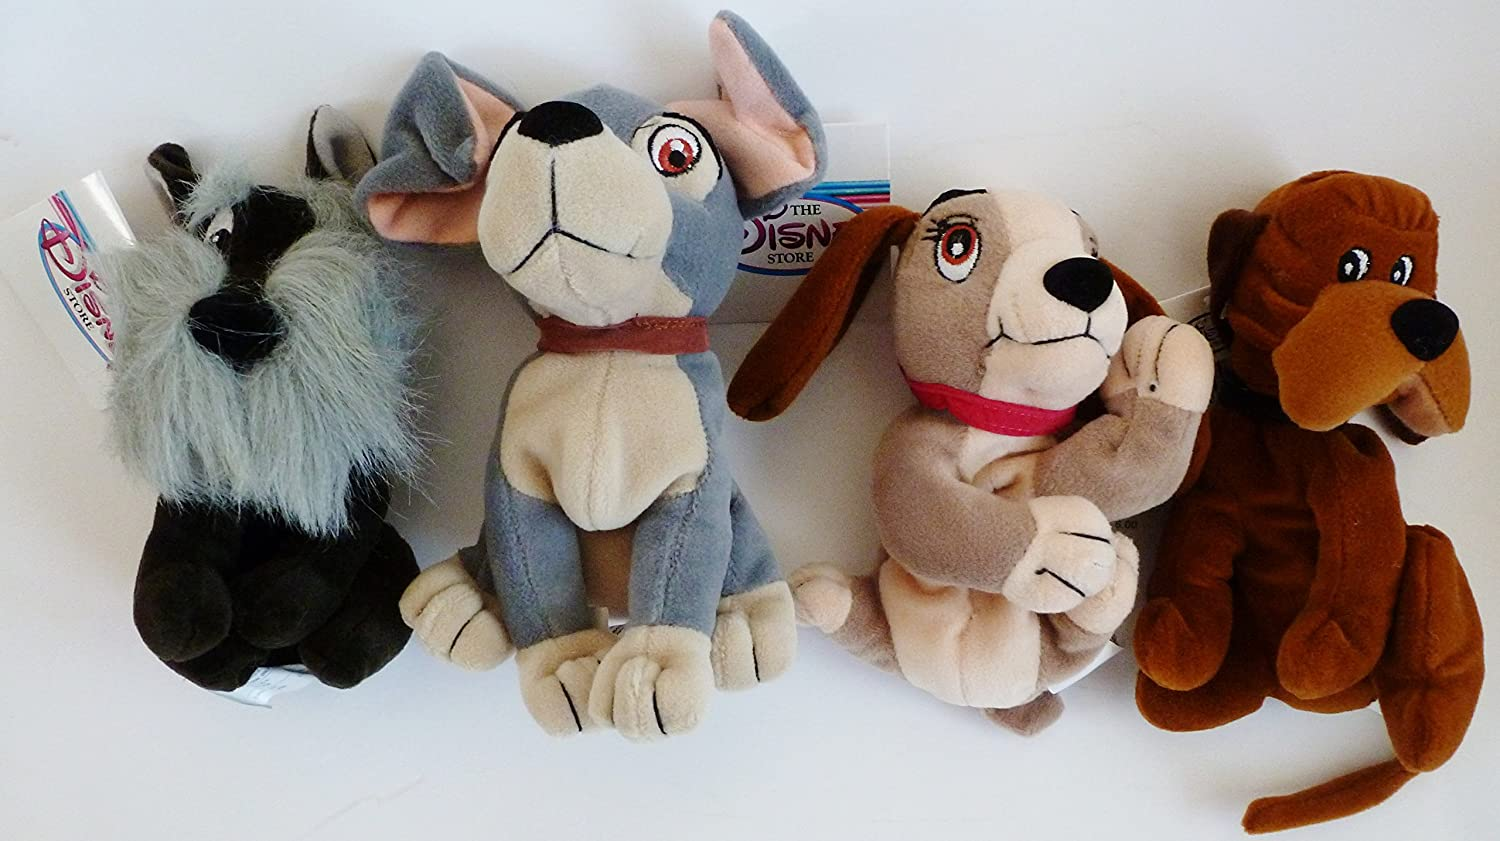 Retired Disney Lady and the Tramp Complete Set of 4 Plush Bean Bag Dolls Including Tramp, Lady, Jock, and Trusty Mint with Tags: Amazon.es: Juguetes y ...